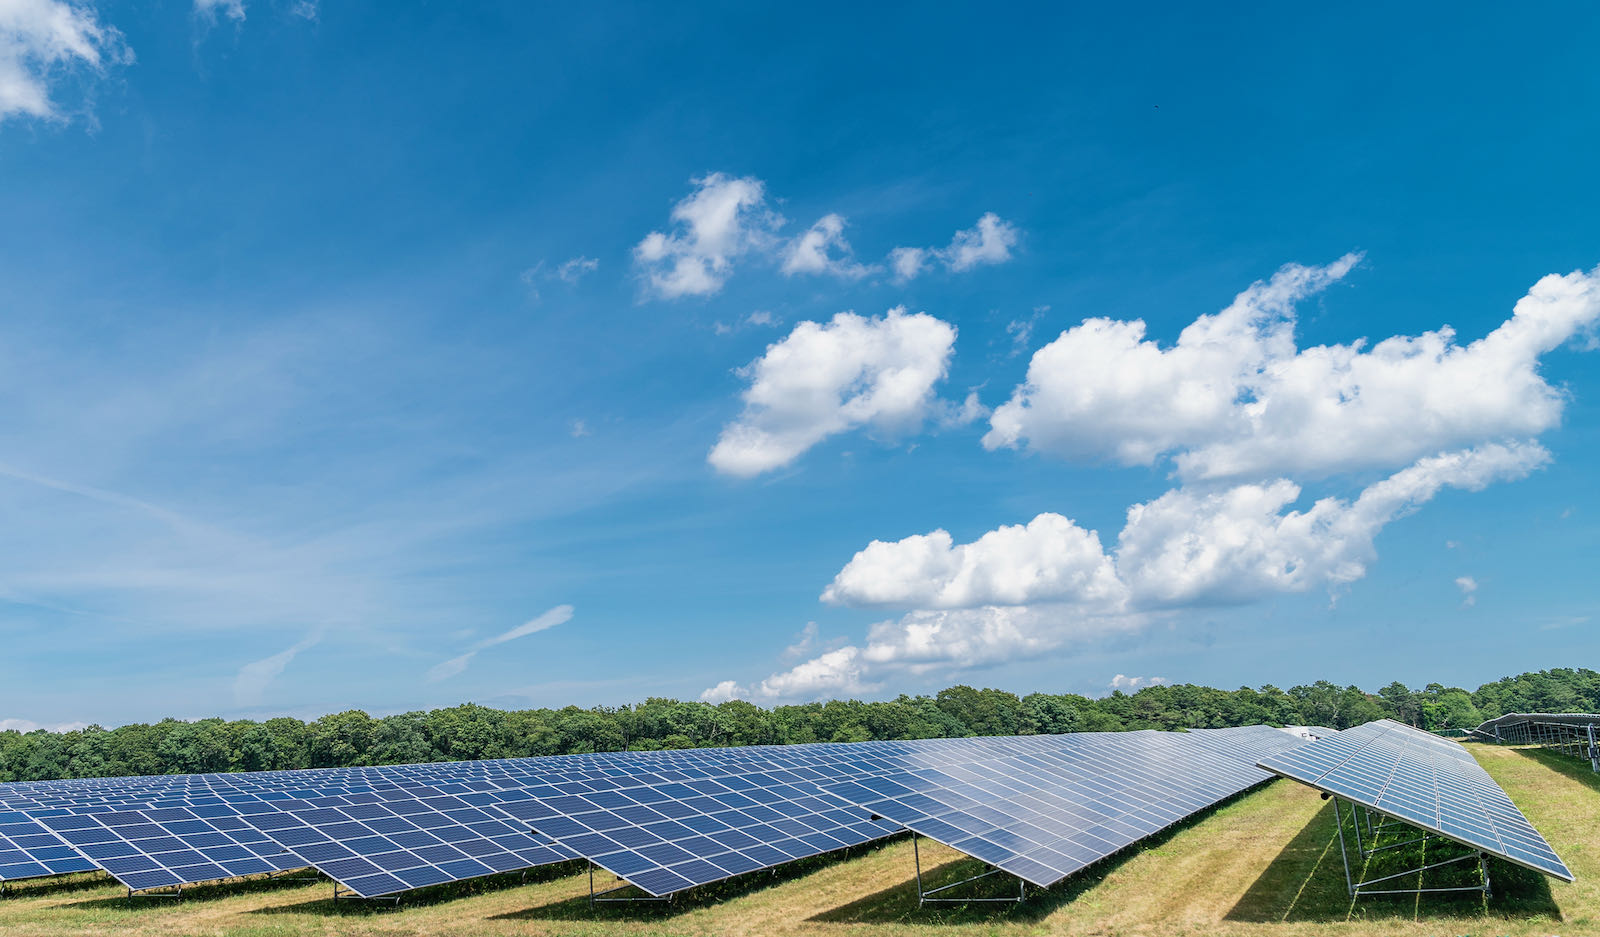 A 20-megawatt solar farm on Long Island